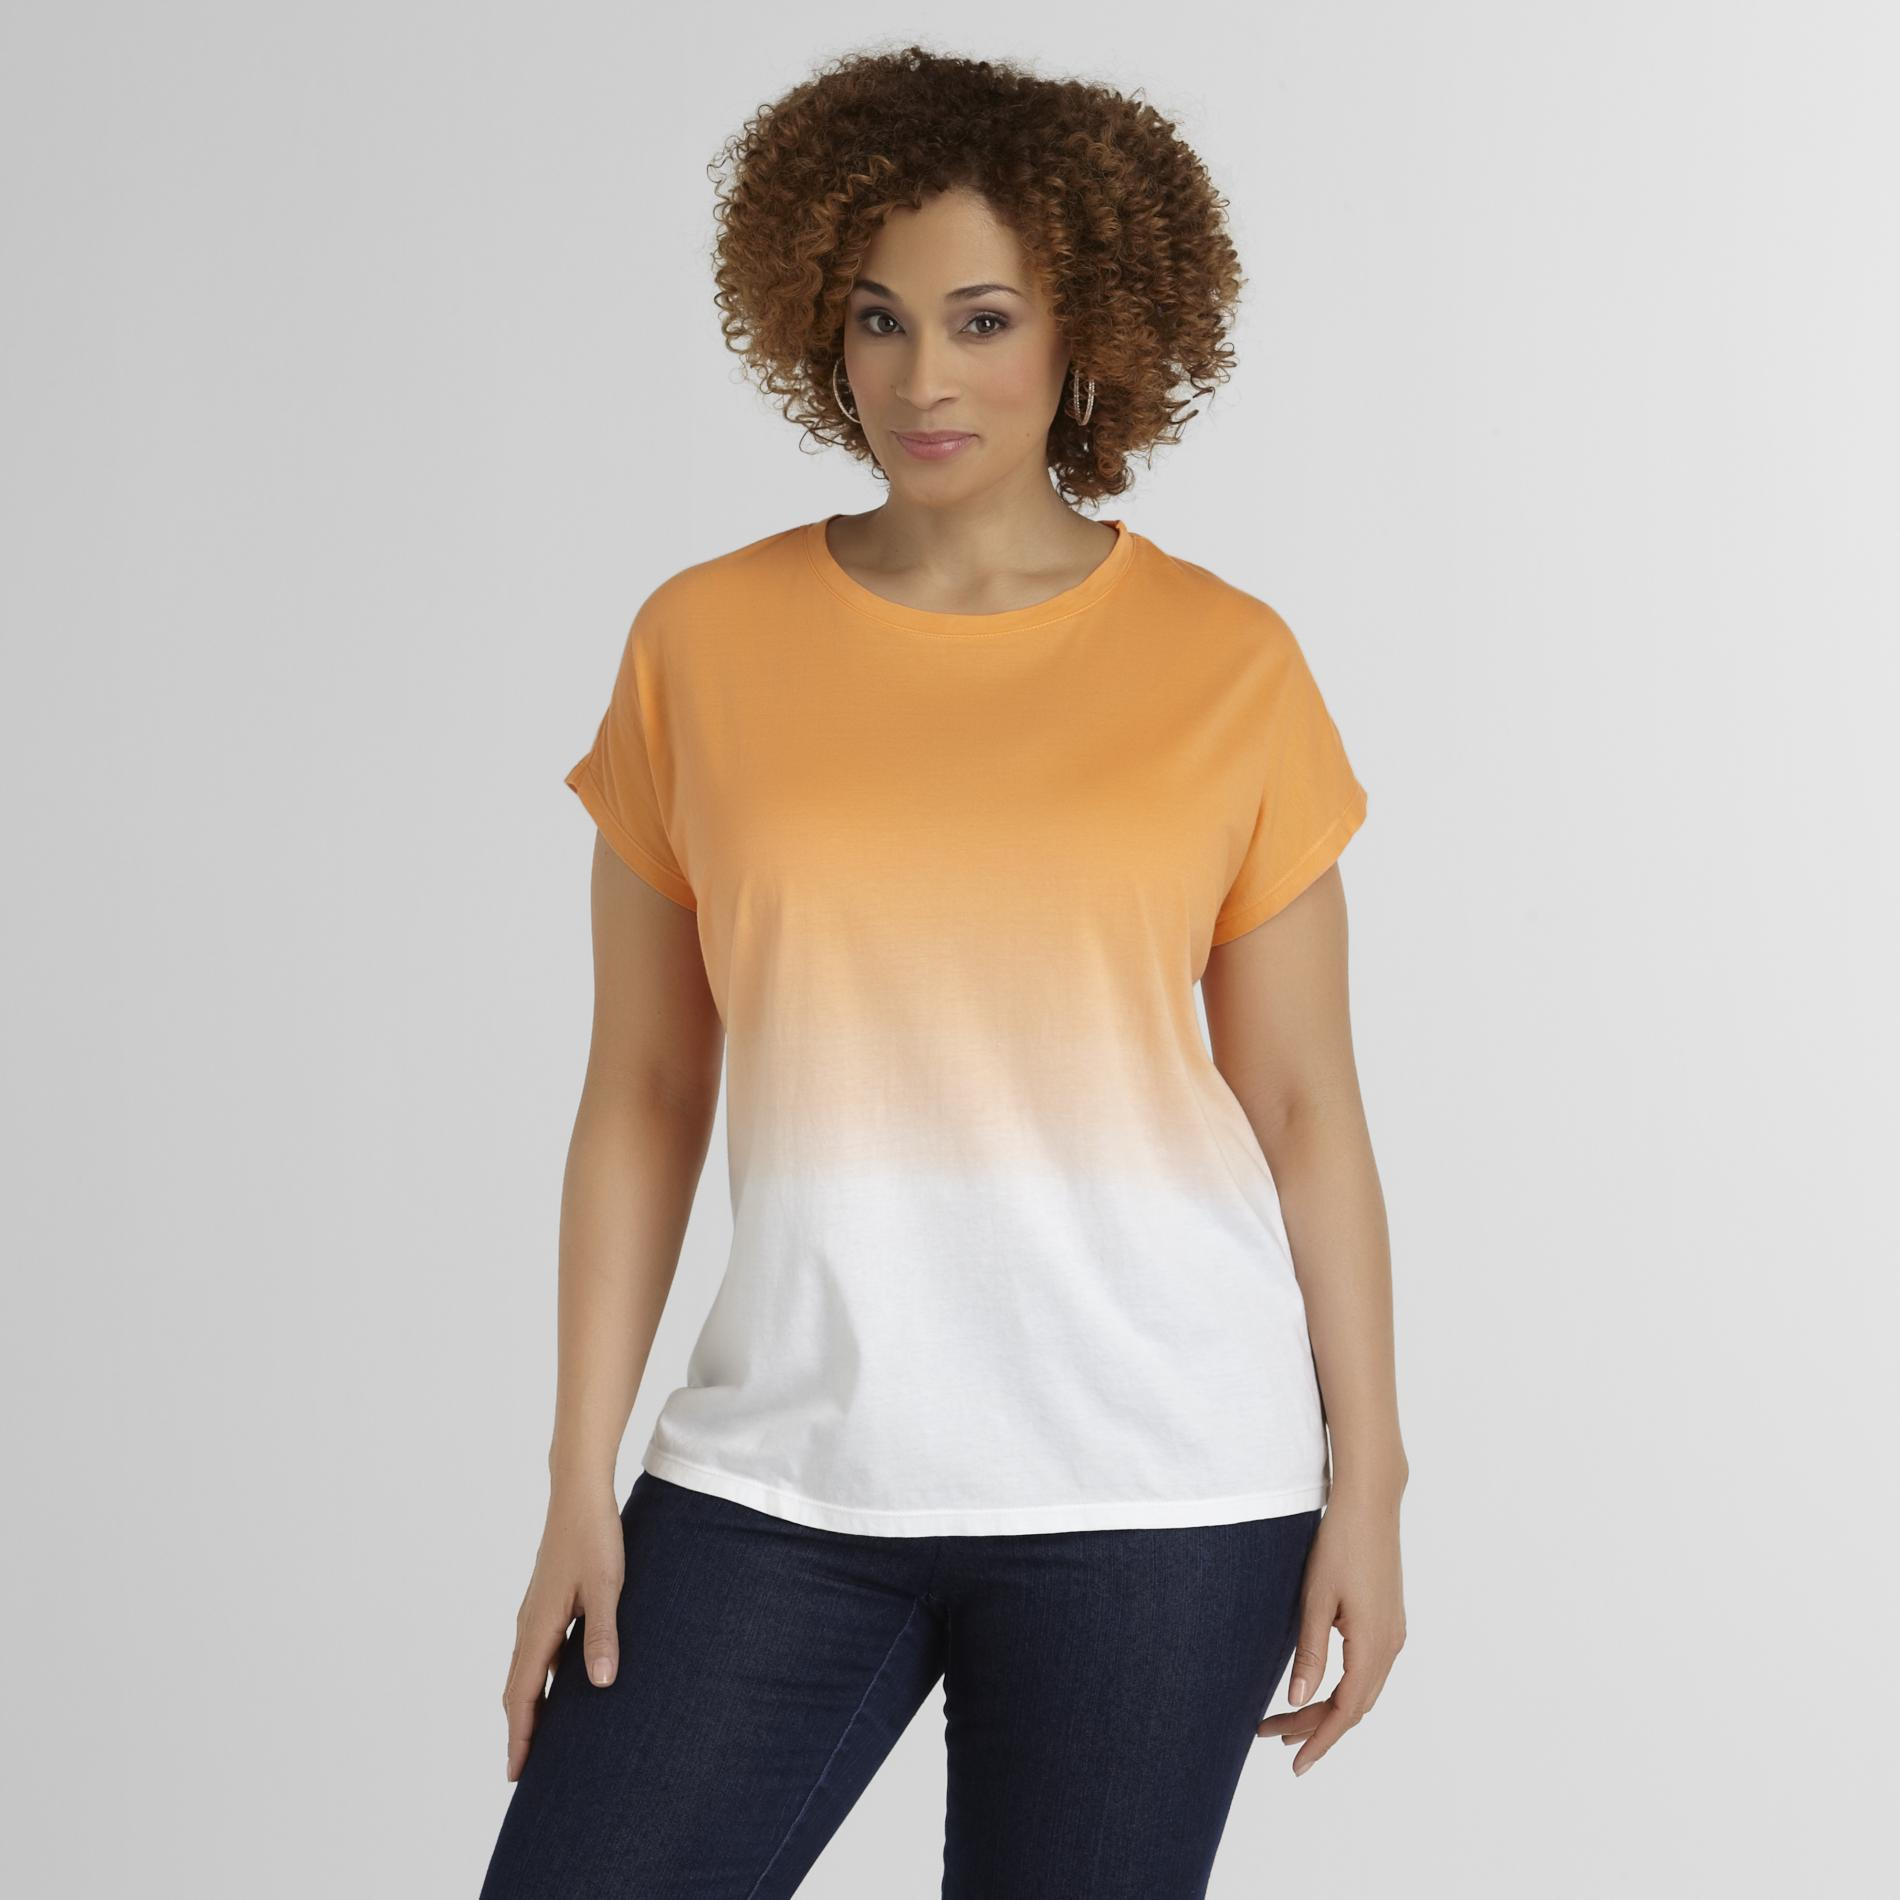 Love Your Style, Love Your Size Women's Plus Top - Ombre at Kmart.com